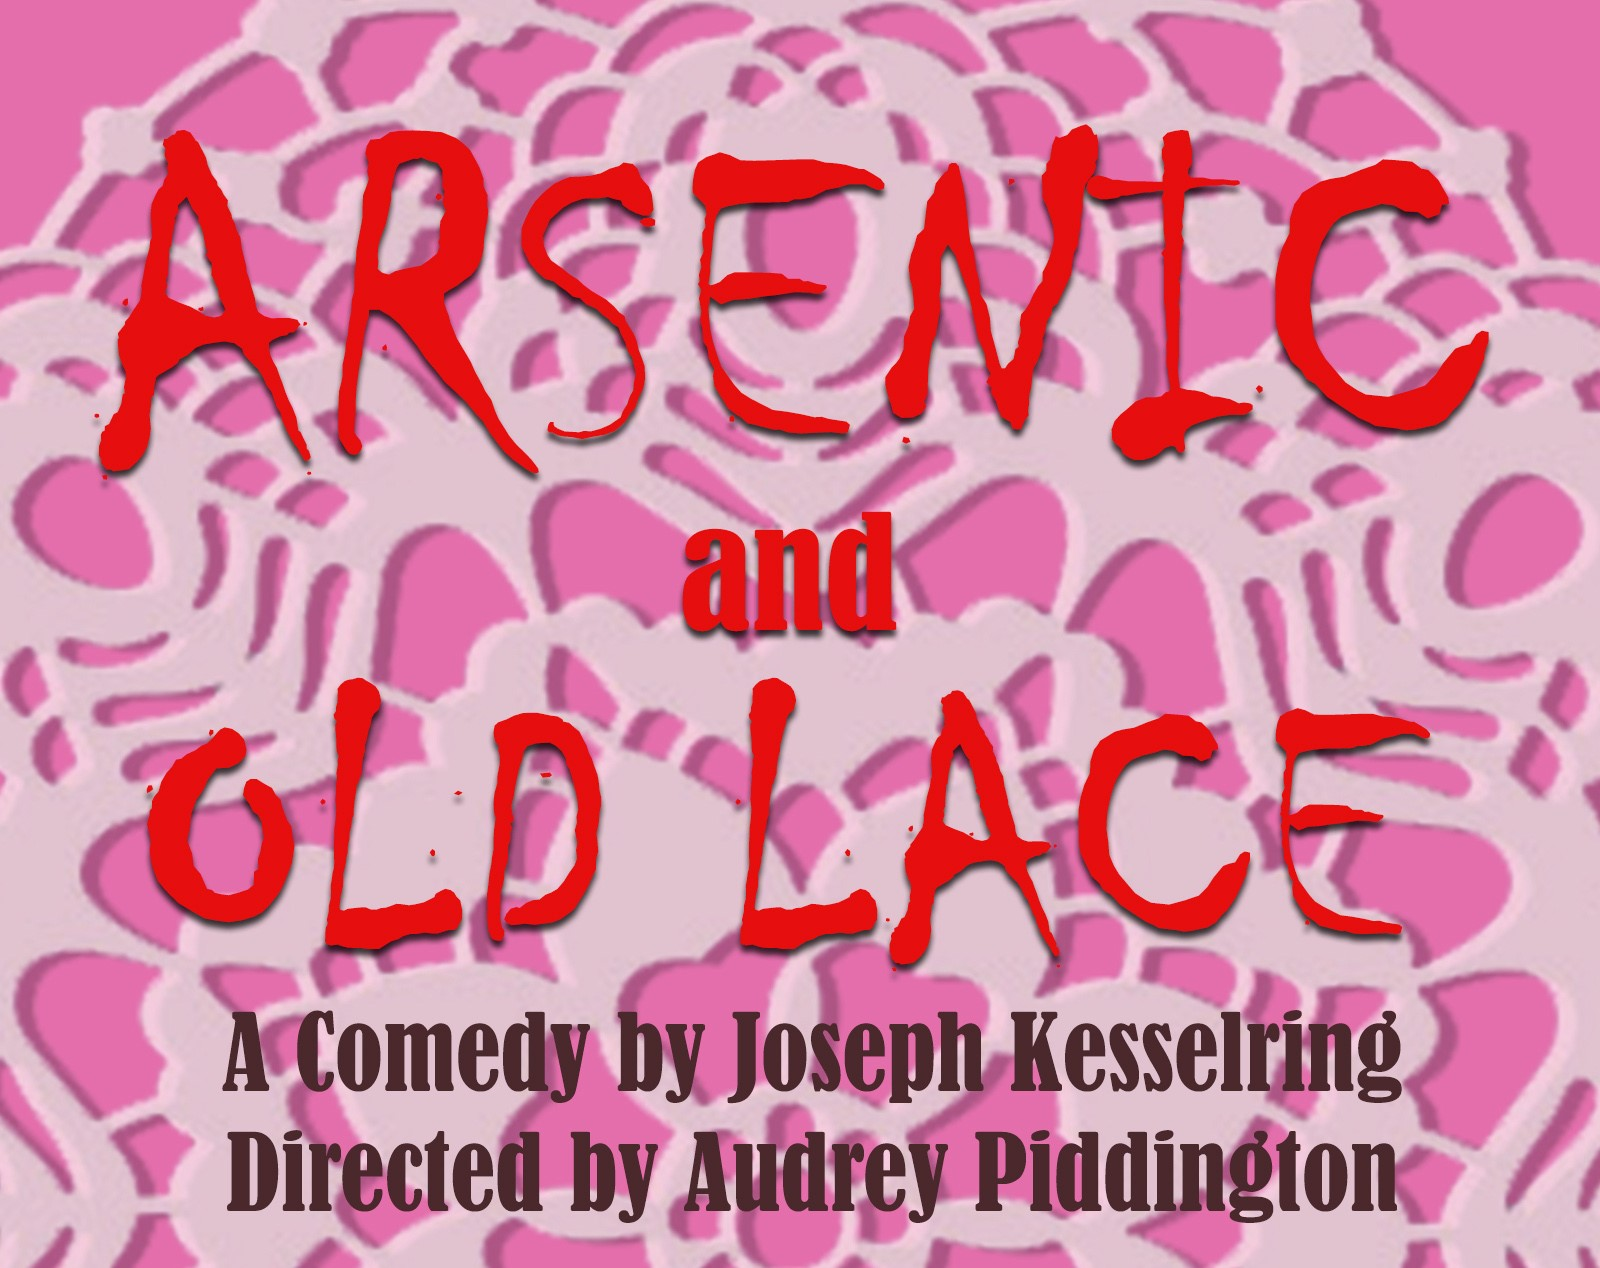 Players Arsenic and Old Lace - Heading